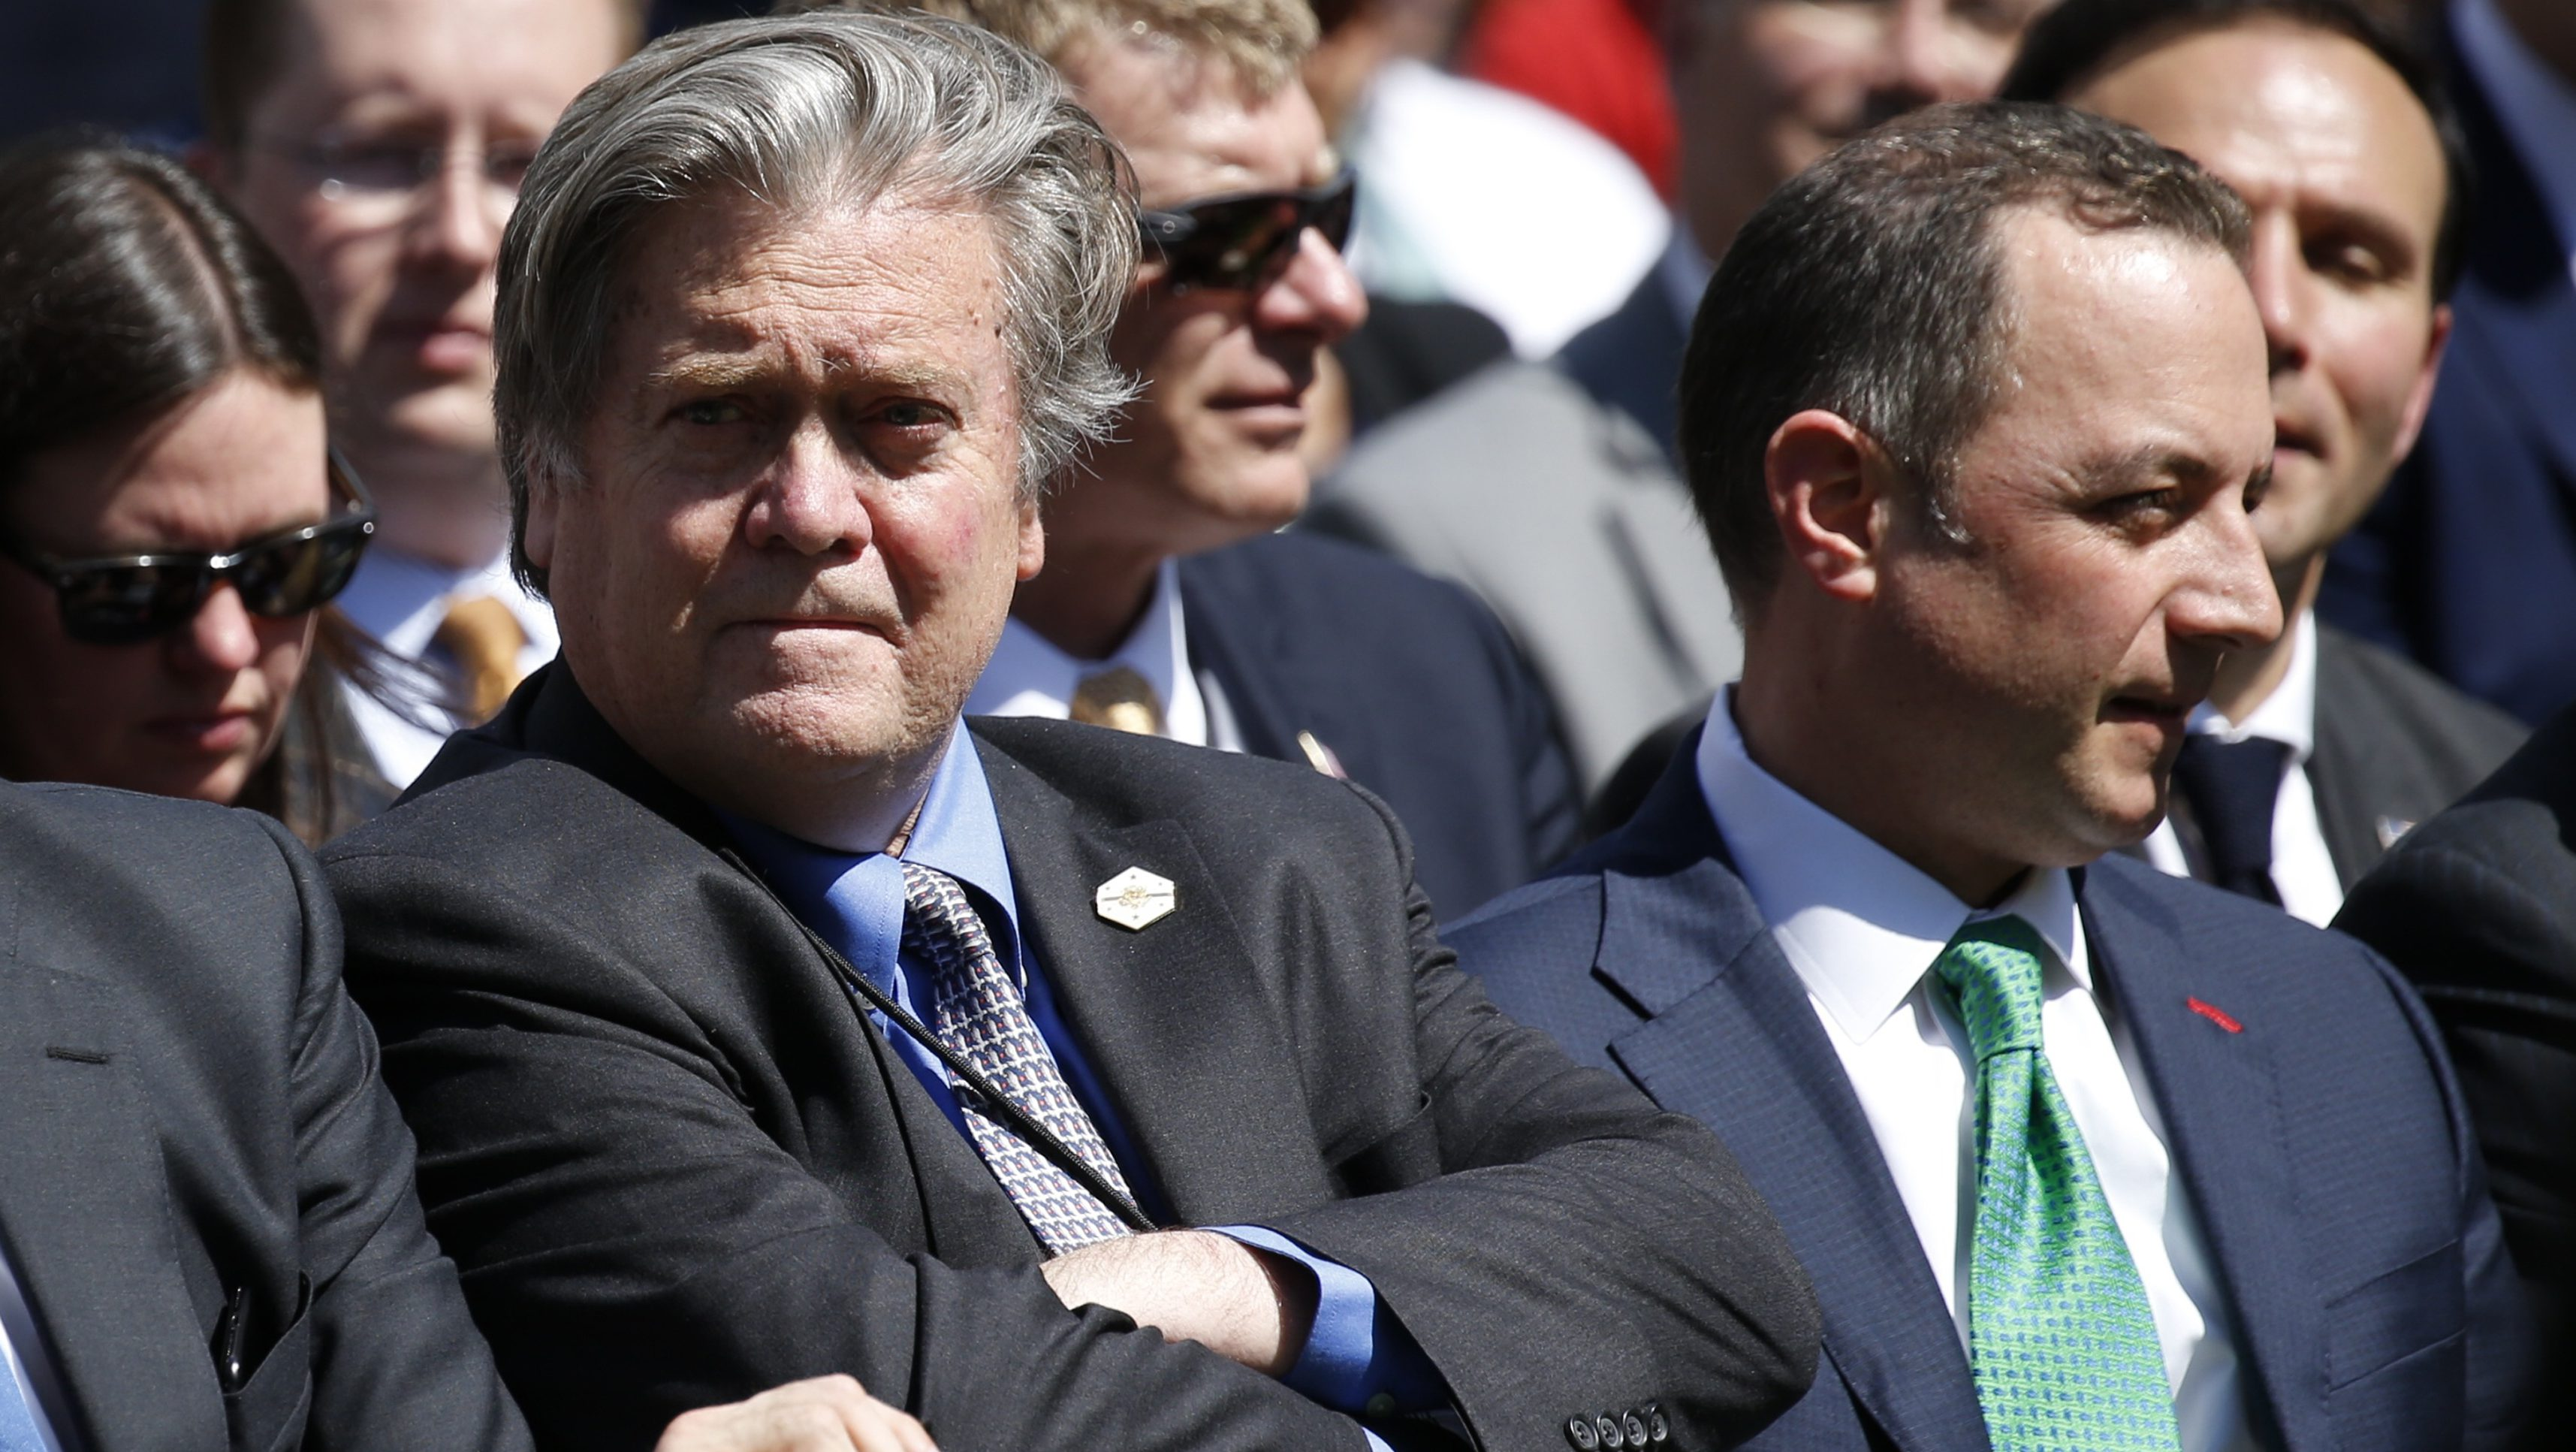 White House Chief Strategist Stephen Bannon (L) and Chief of Staff Reince Priebus (R) wait in the Rose Garden prior to U.S. President Donald Trump announcing his decision on whether the U.S. will remain in the Paris Climate Agreement, at the White House in Washington, U.S., June 1, 2017. REUTERS/Joshua Roberts - RTX38LIY